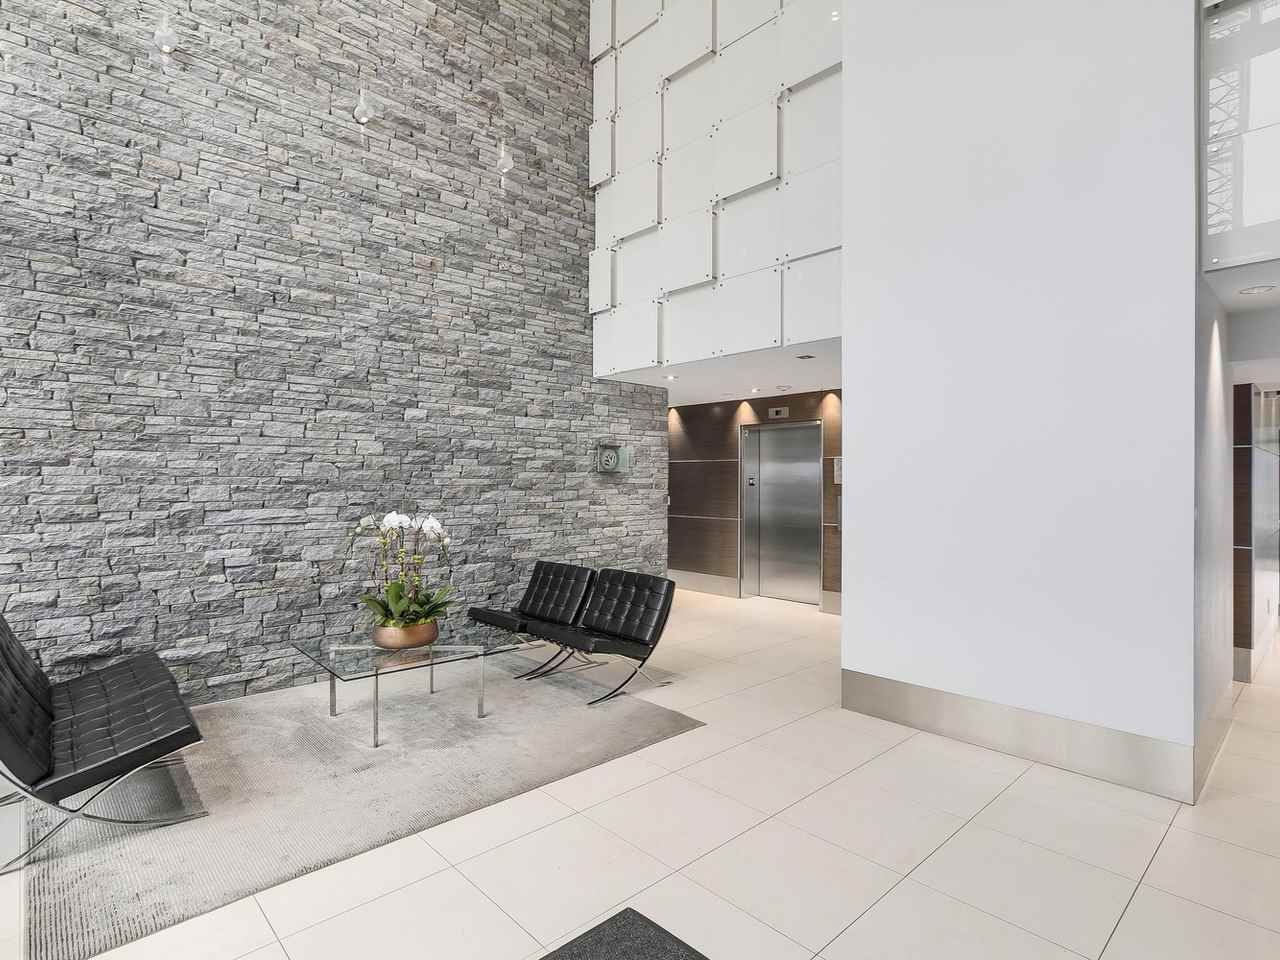 Photo 20: Photos: 401 1455 HOWE STREET in Vancouver: Yaletown Condo for sale (Vancouver West)  : MLS®# R2145939